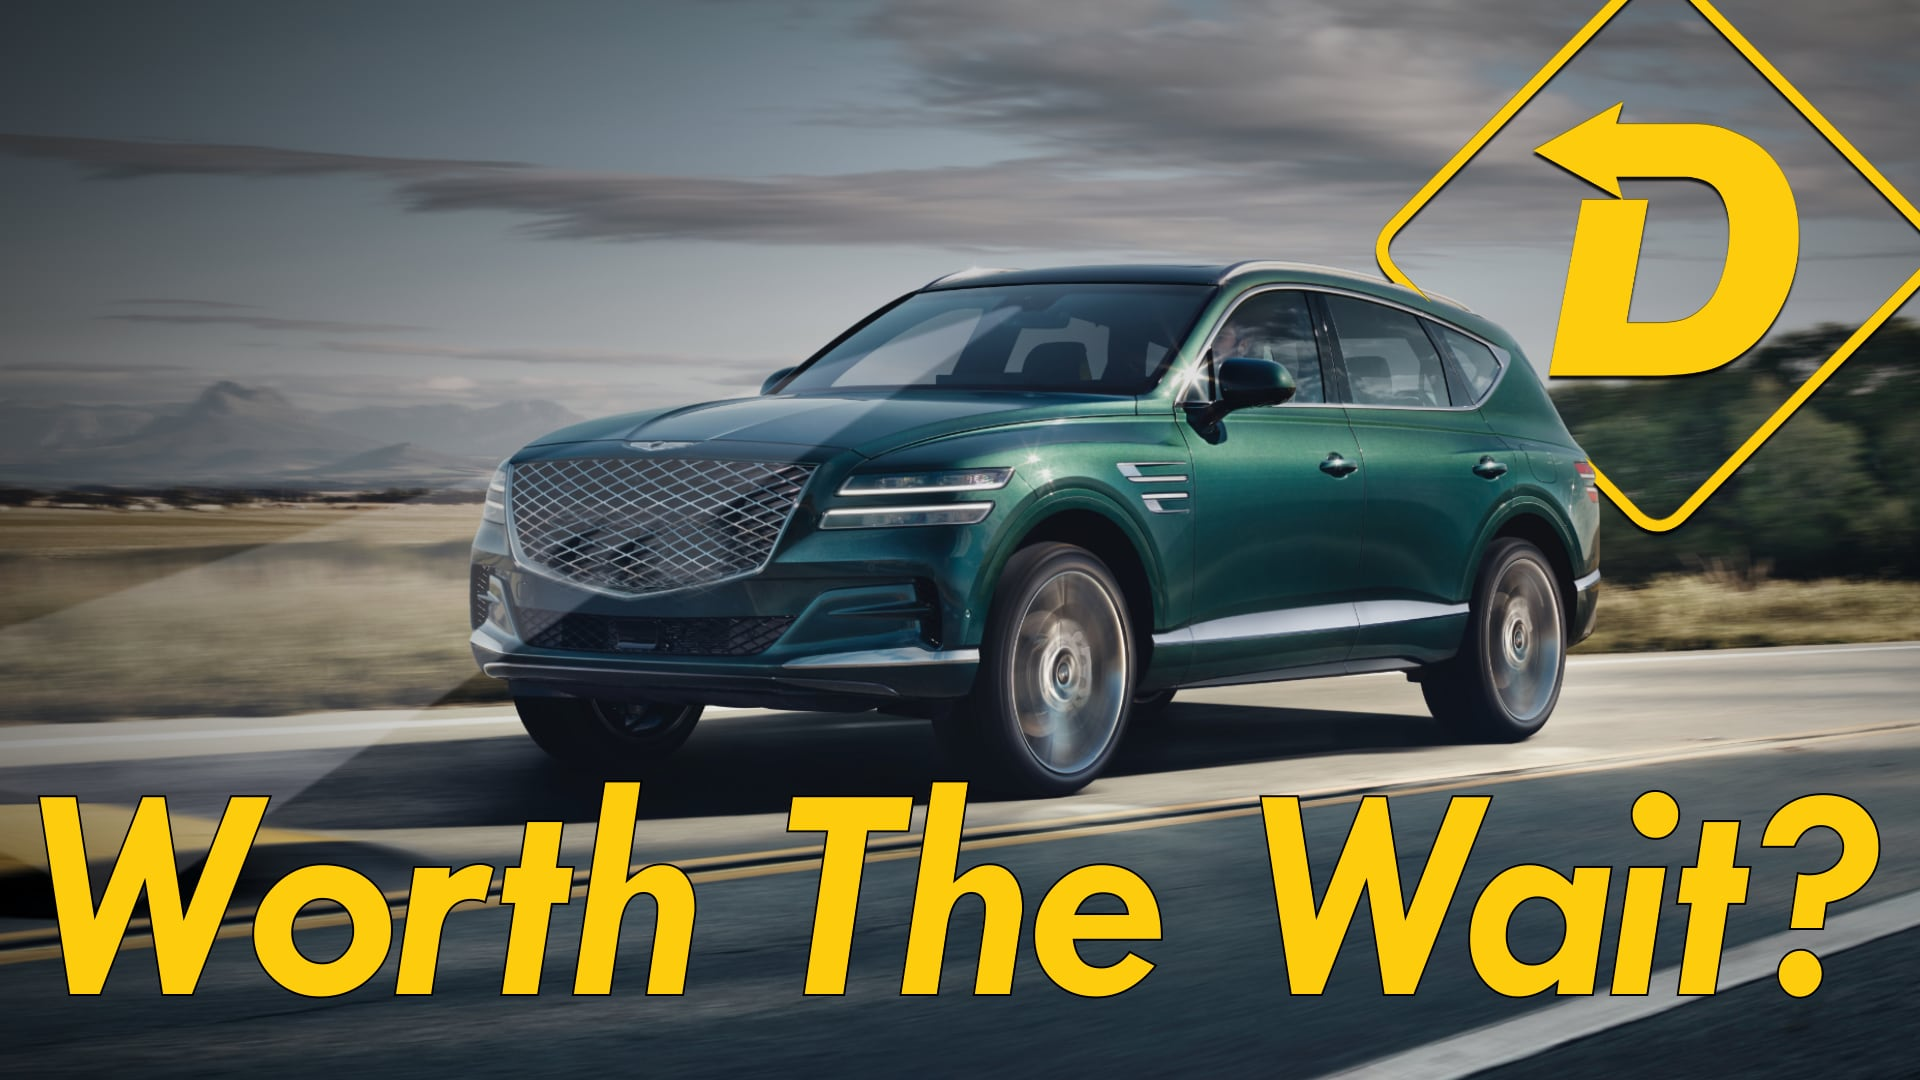 The Genesis GV80 SUV Looks Like Strong Competition! (Was It Worth The Wait?)